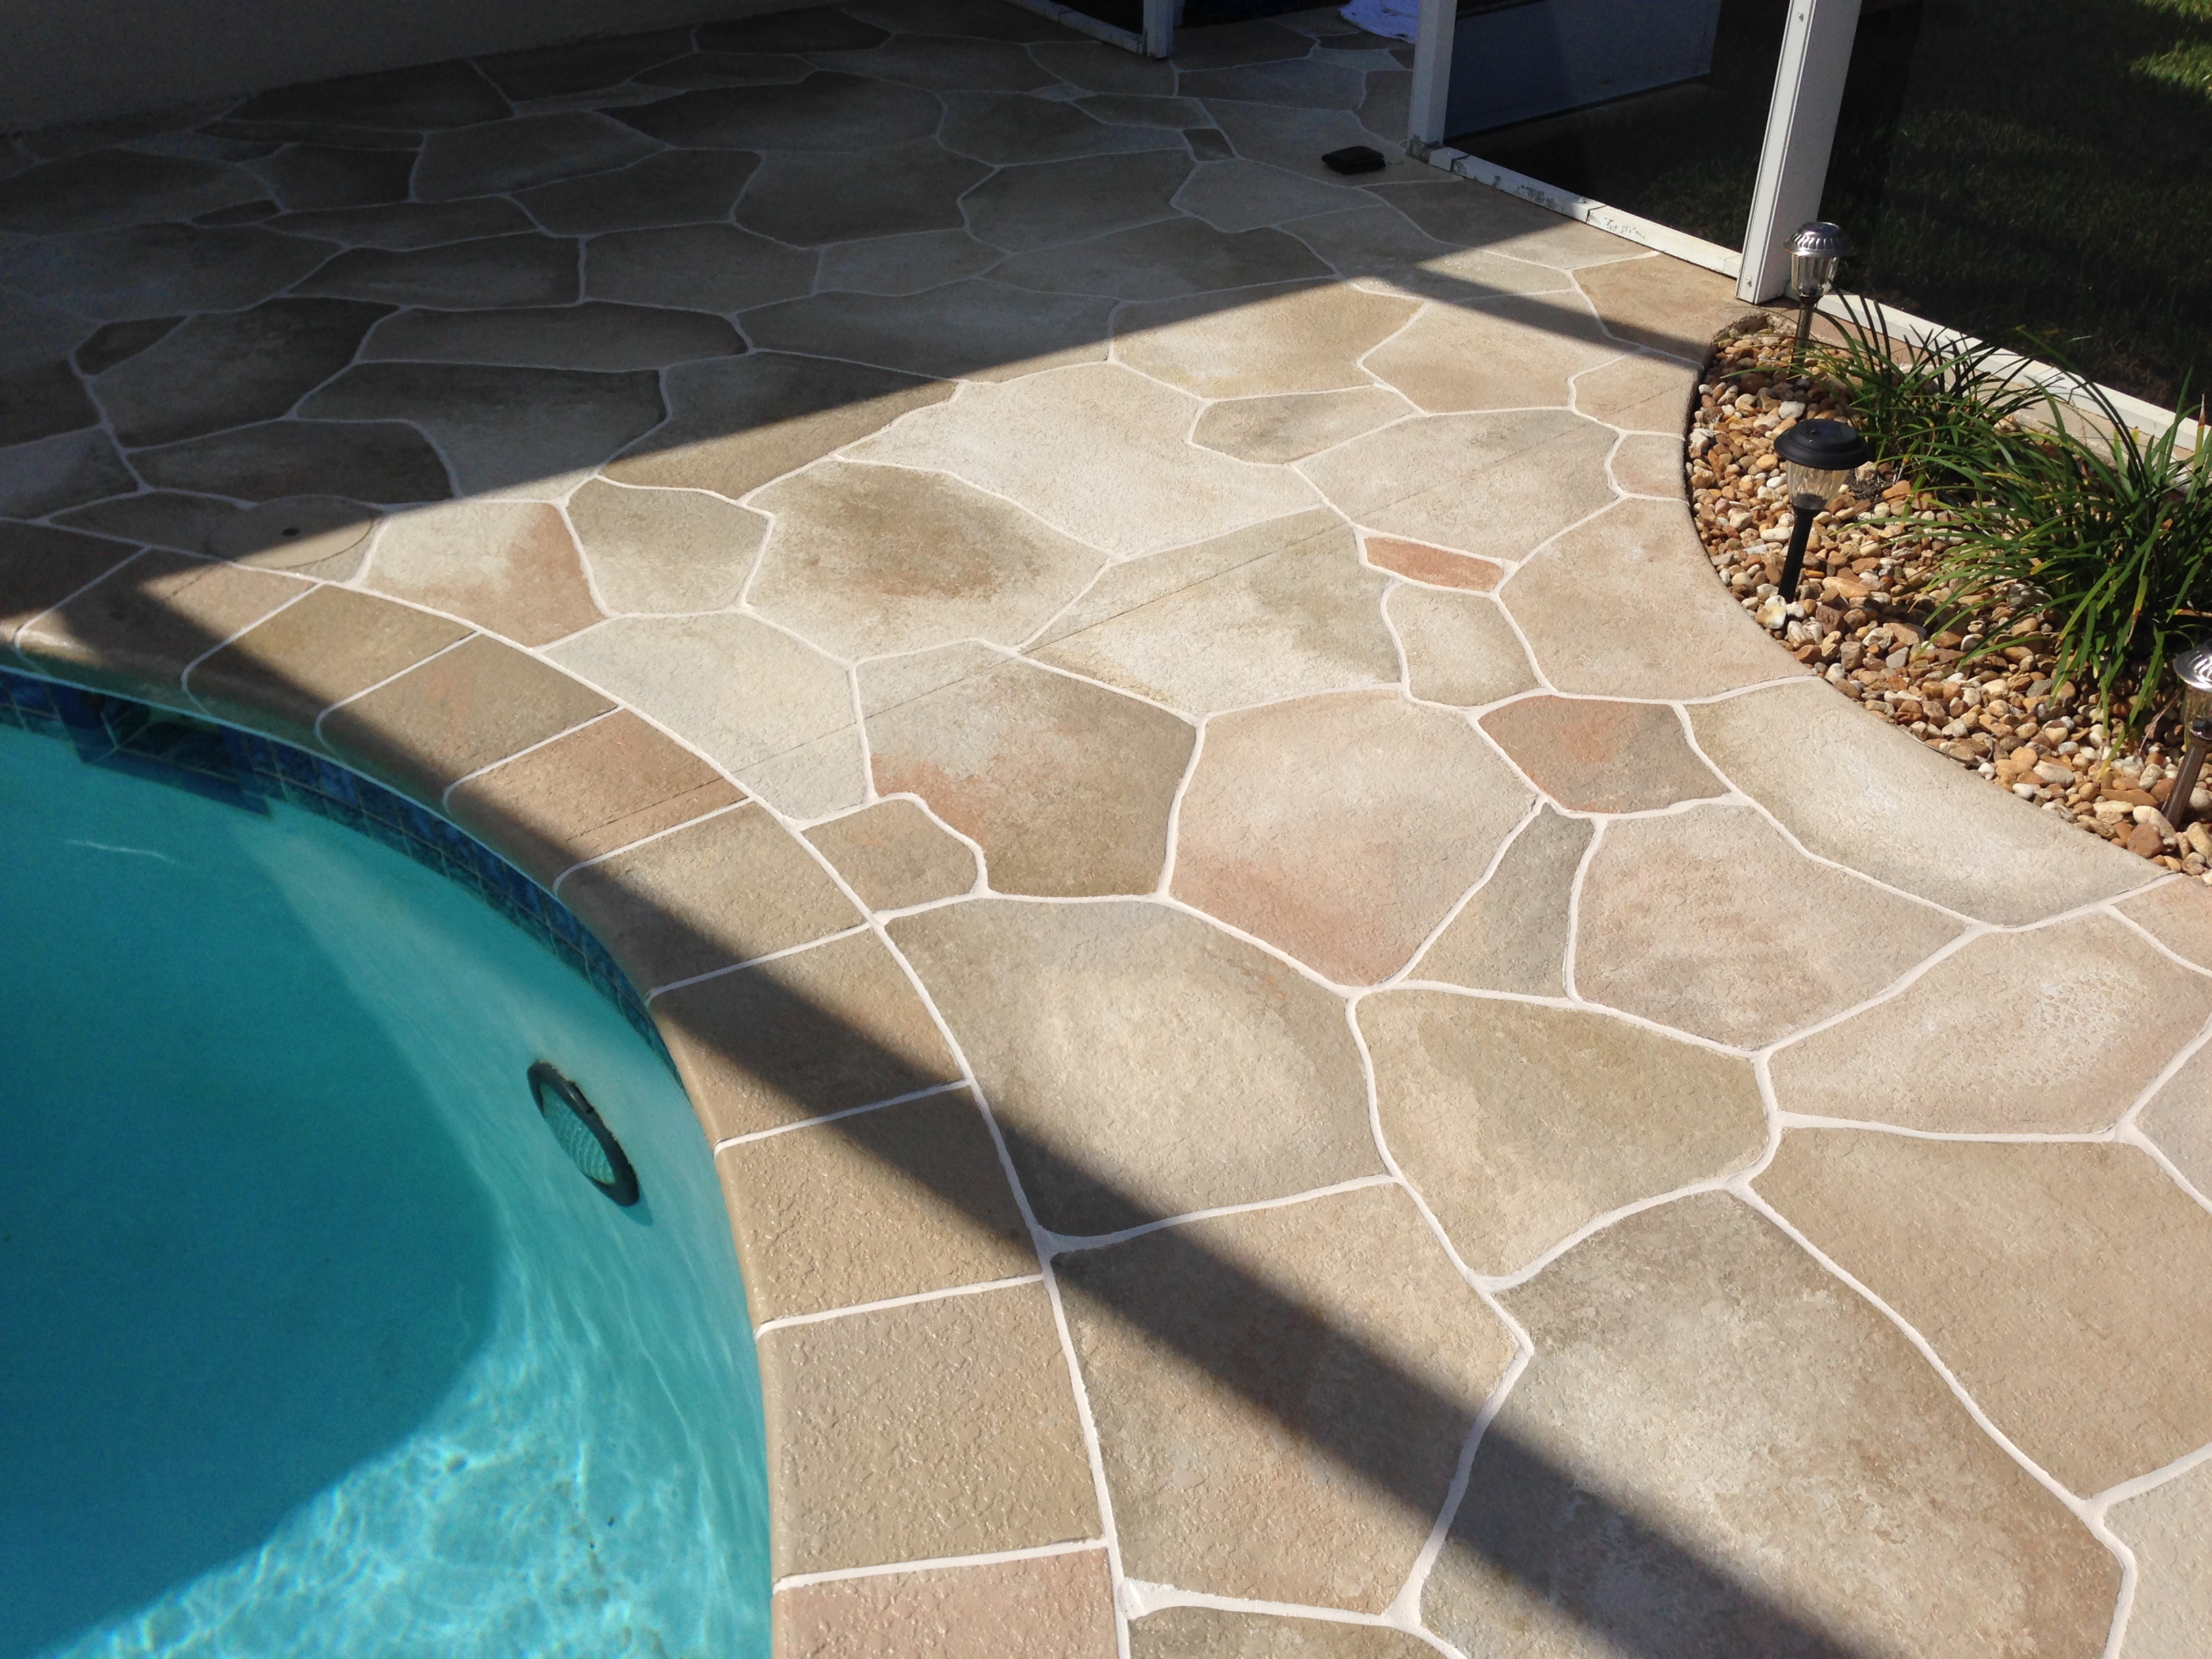 index slate after flagstone sand design joints in gravel patio patios cotton polymeric tan hardscapes montana set by